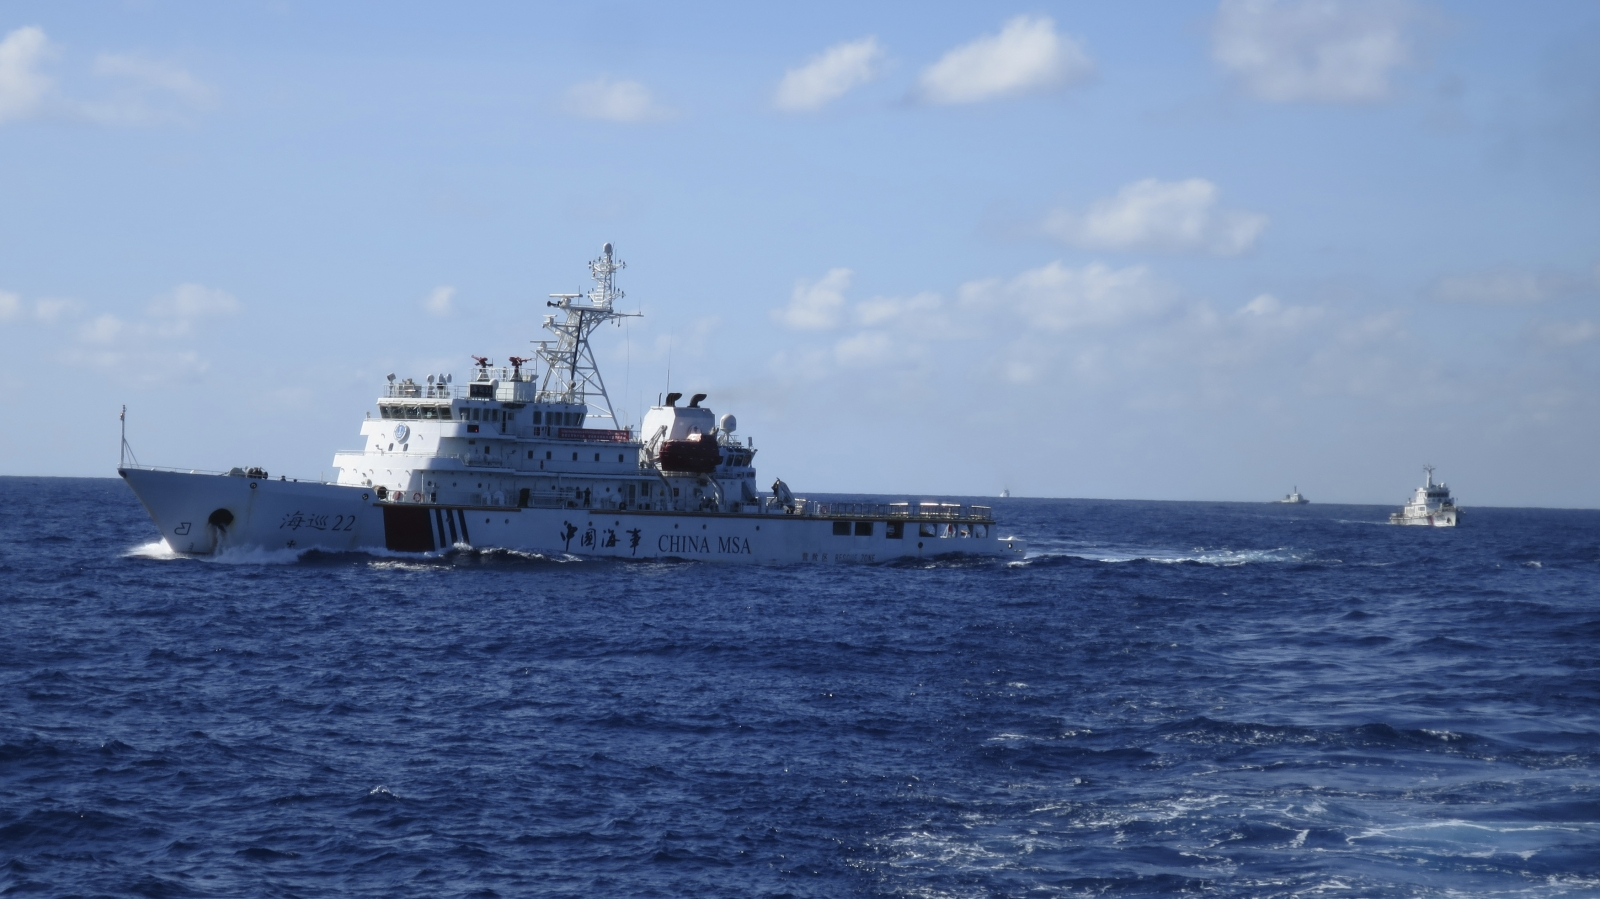 Beijing finds massive gas reserve in contentious South China Sea region